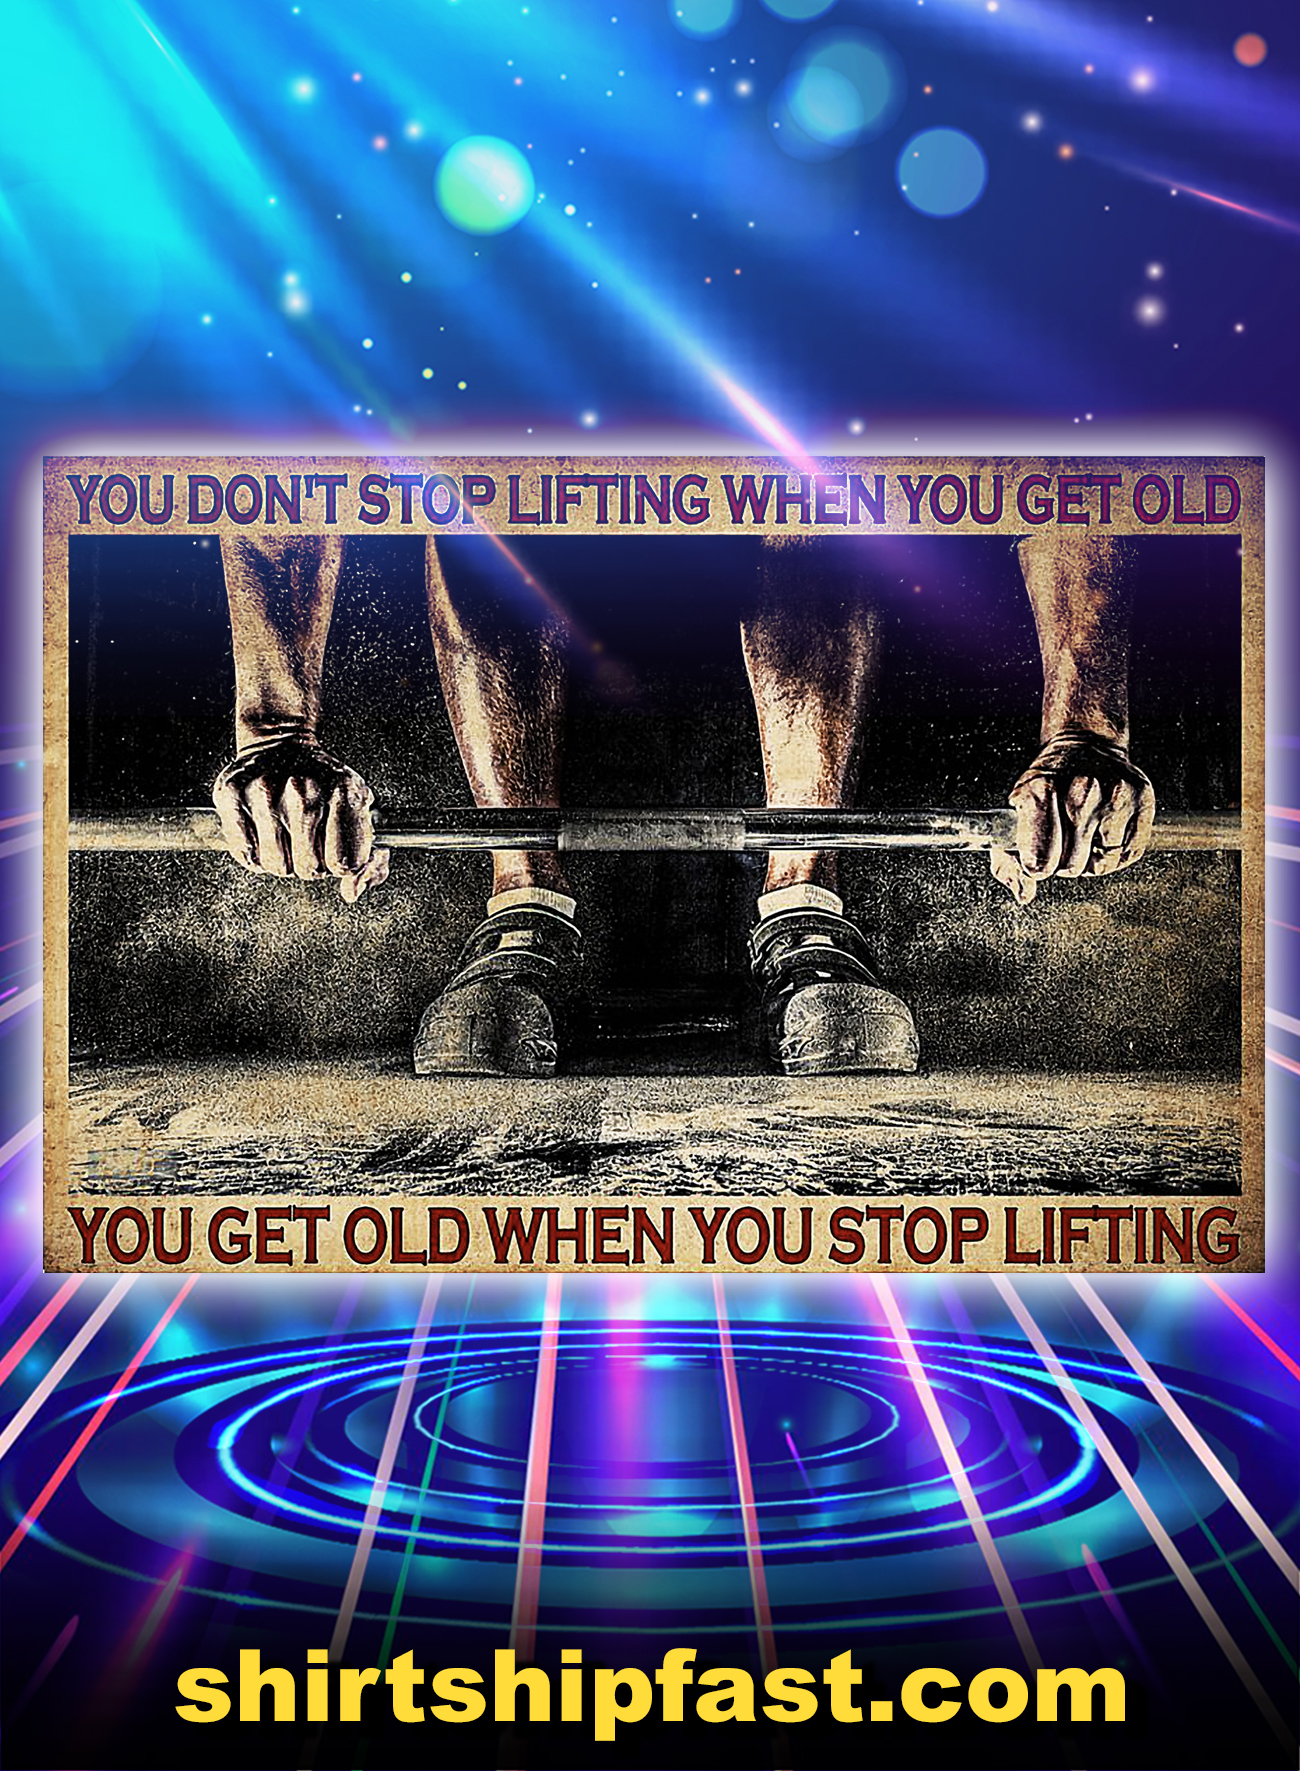 You don't stop lifting when you get old Fitness poster - A4